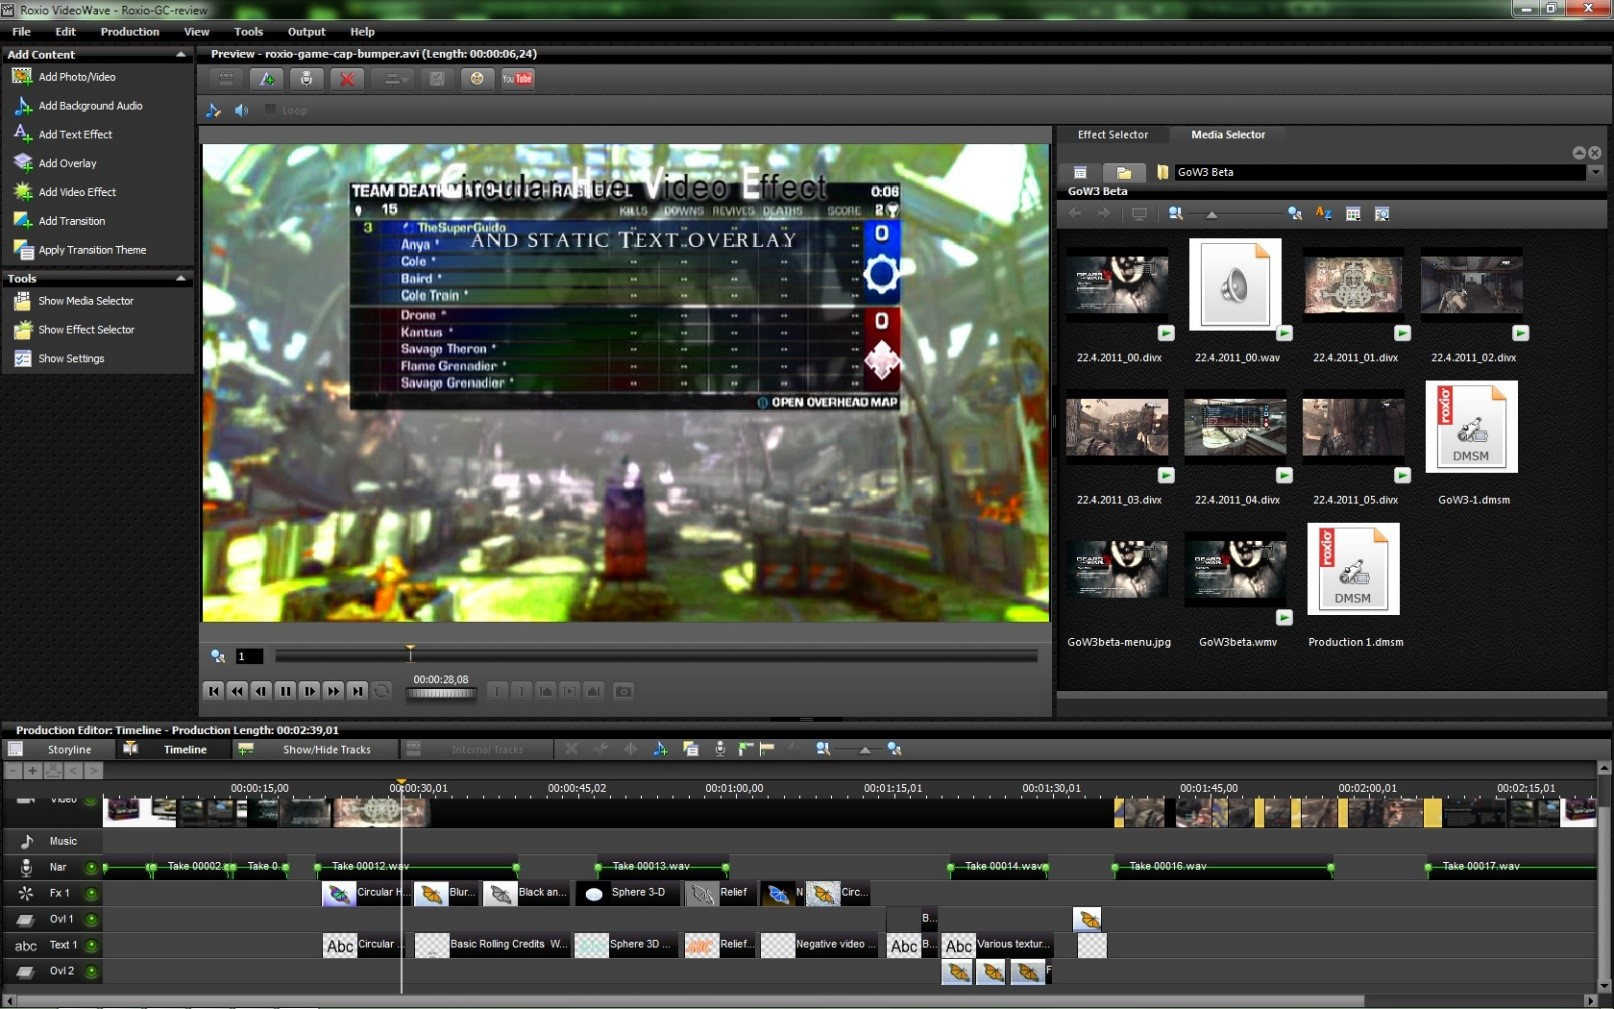 video recorder software free download full version